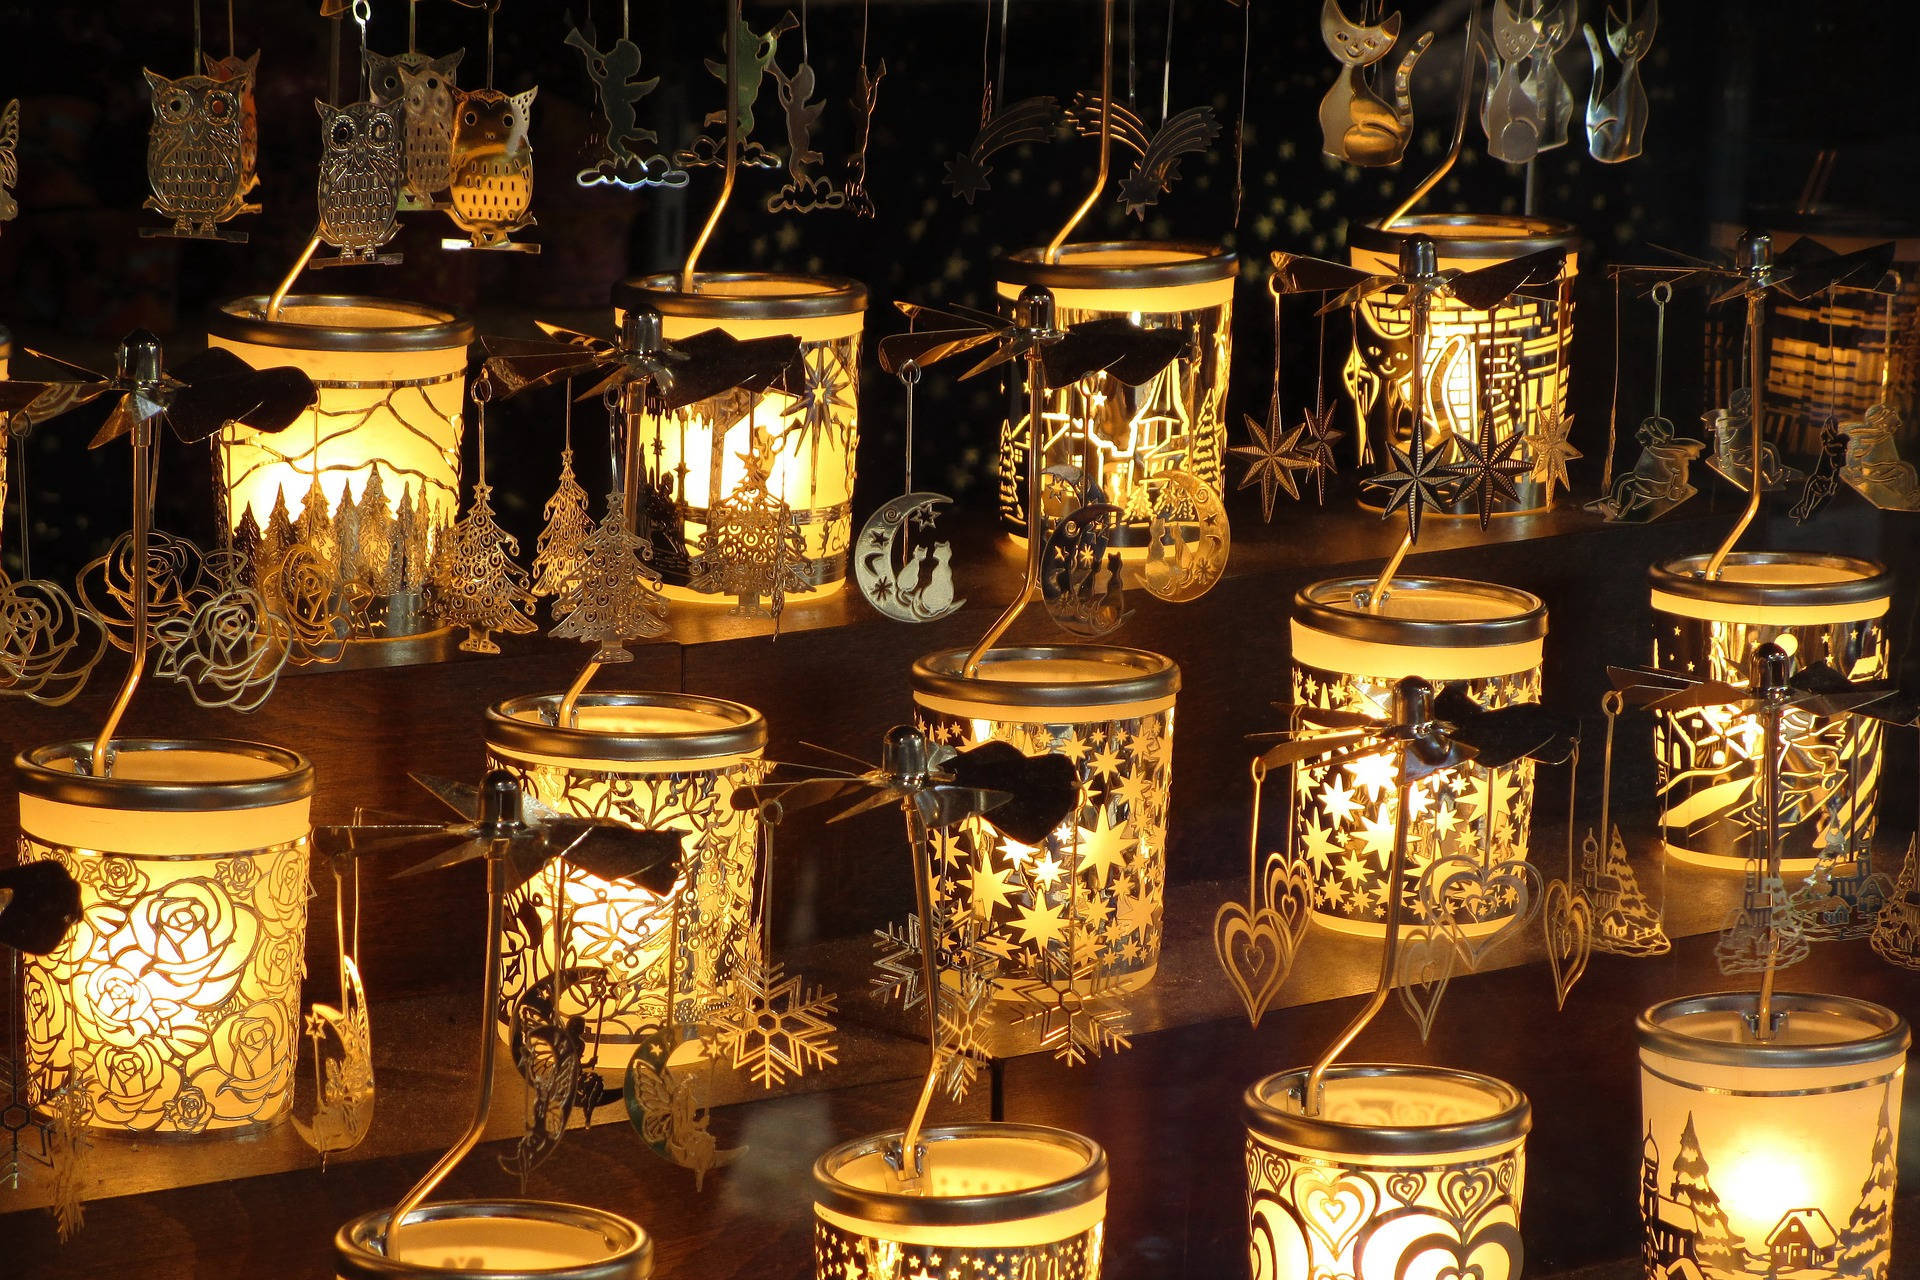 tea-lights-1742638_1920_web